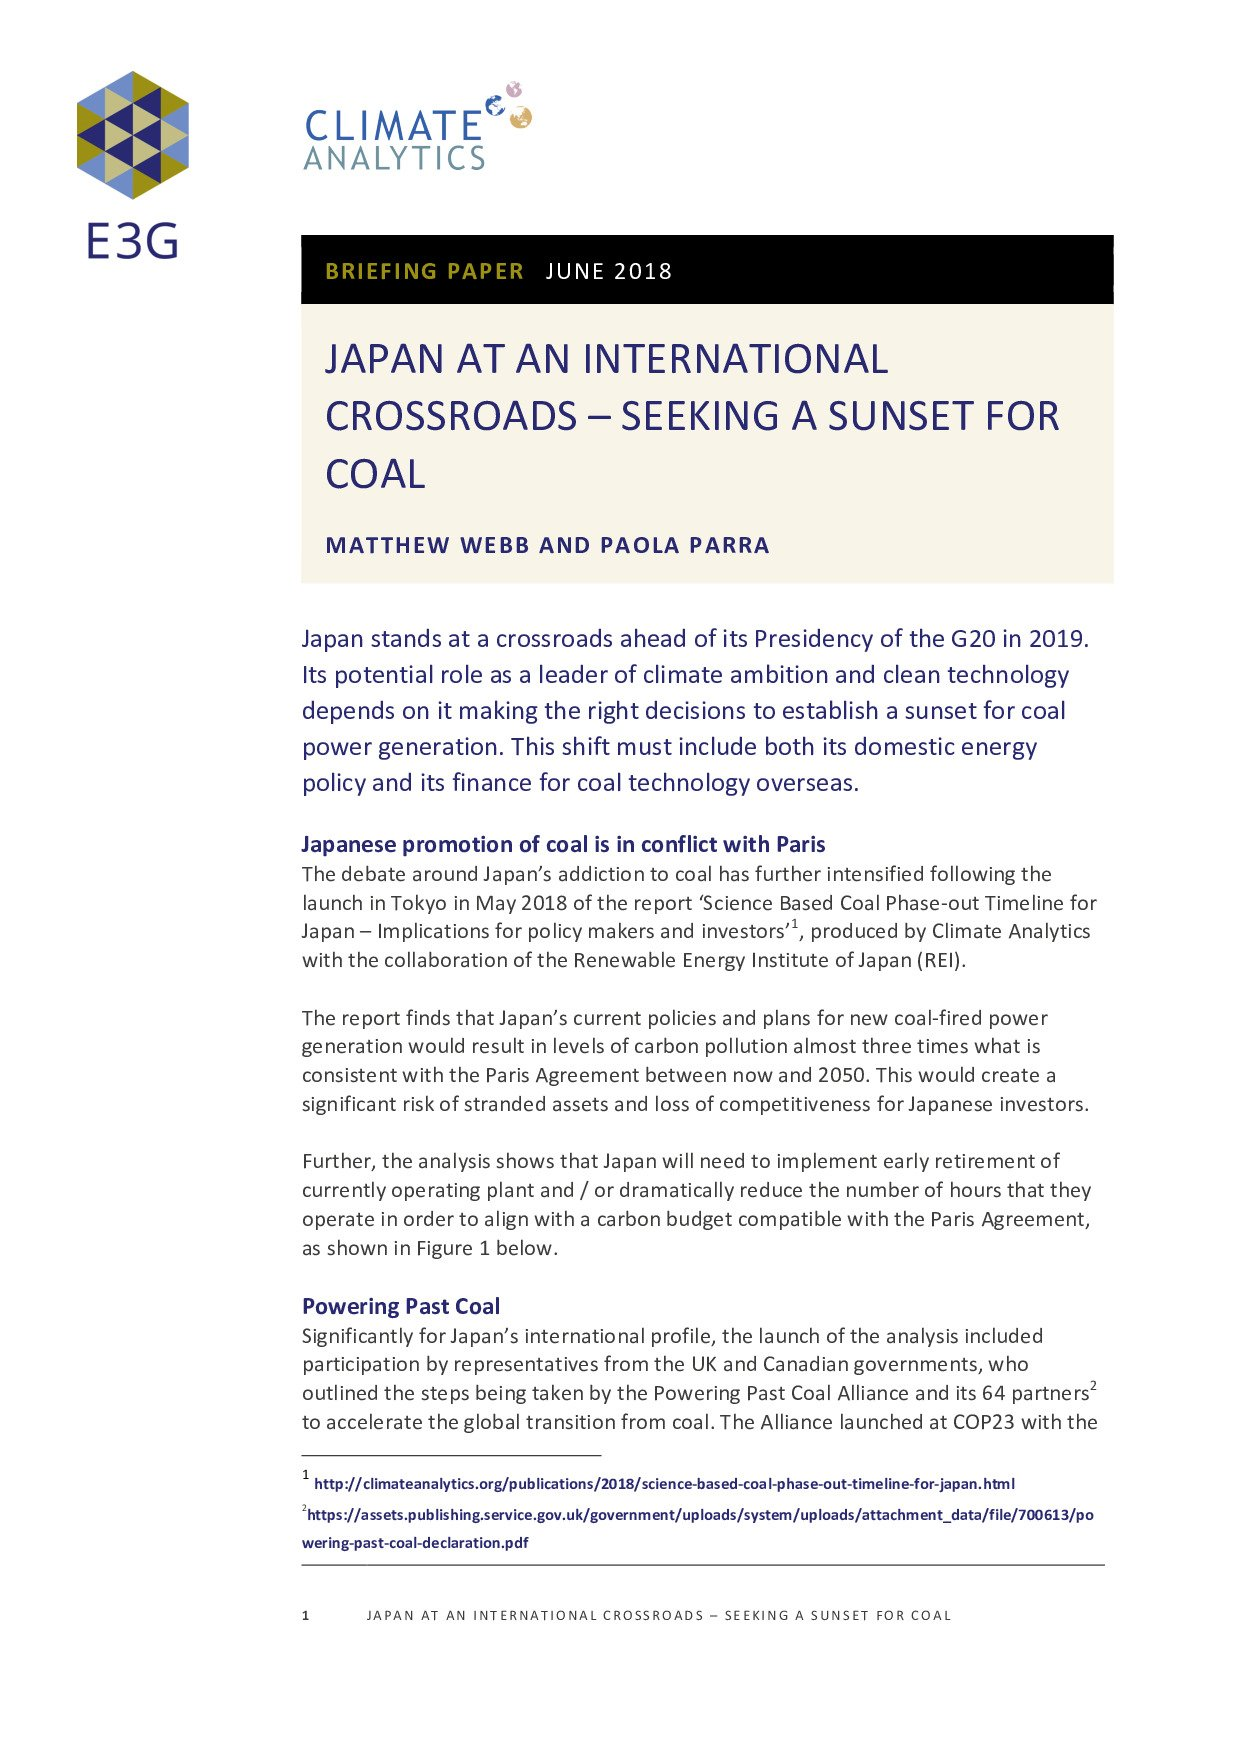 Japan At An International Crossroads Seeking A Sunset For Coal